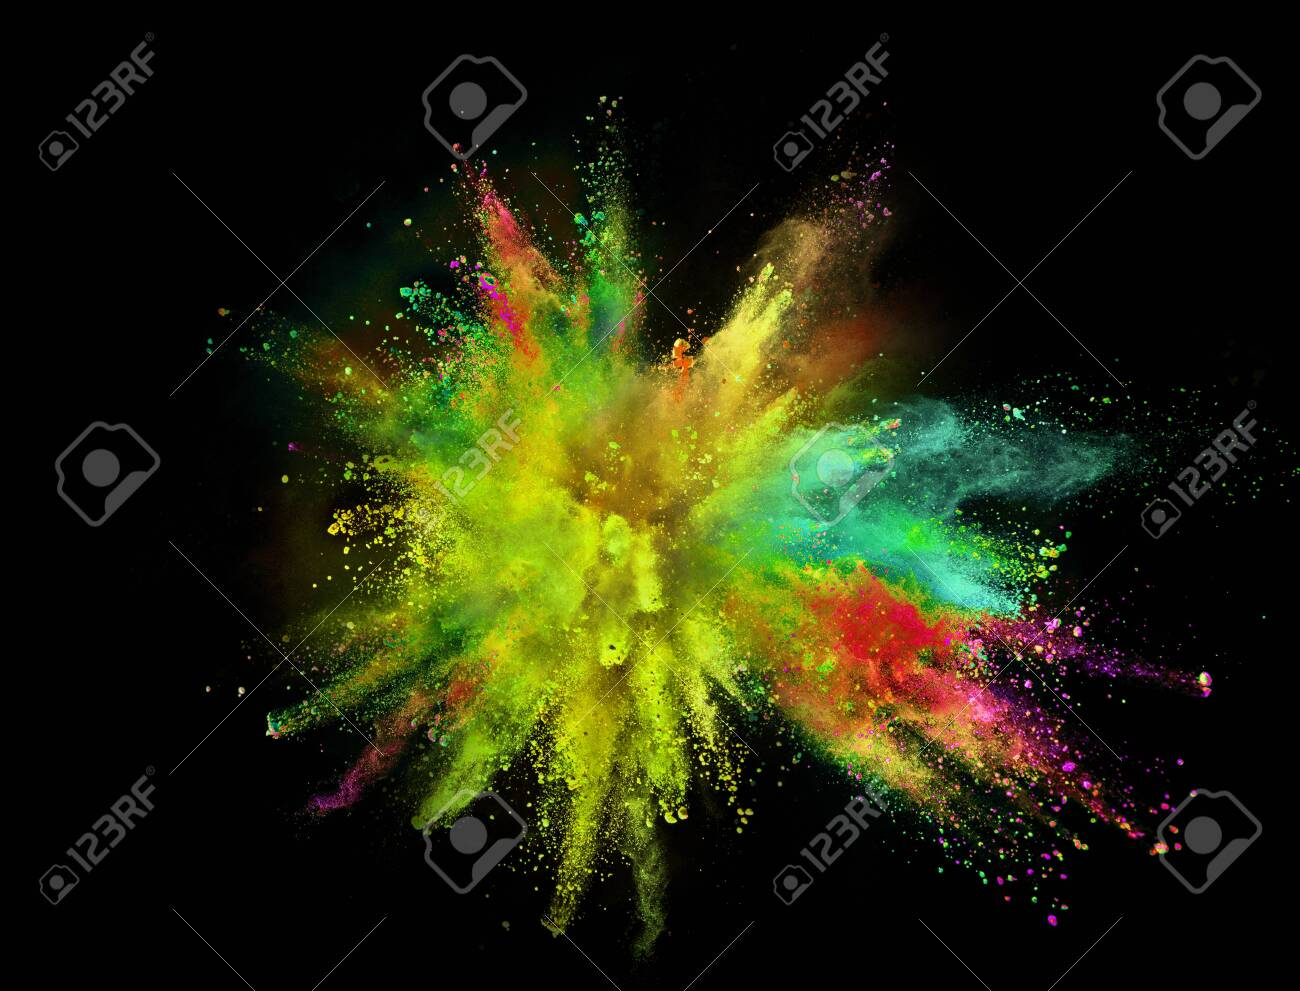 Colored powder explosion on black - 124302764